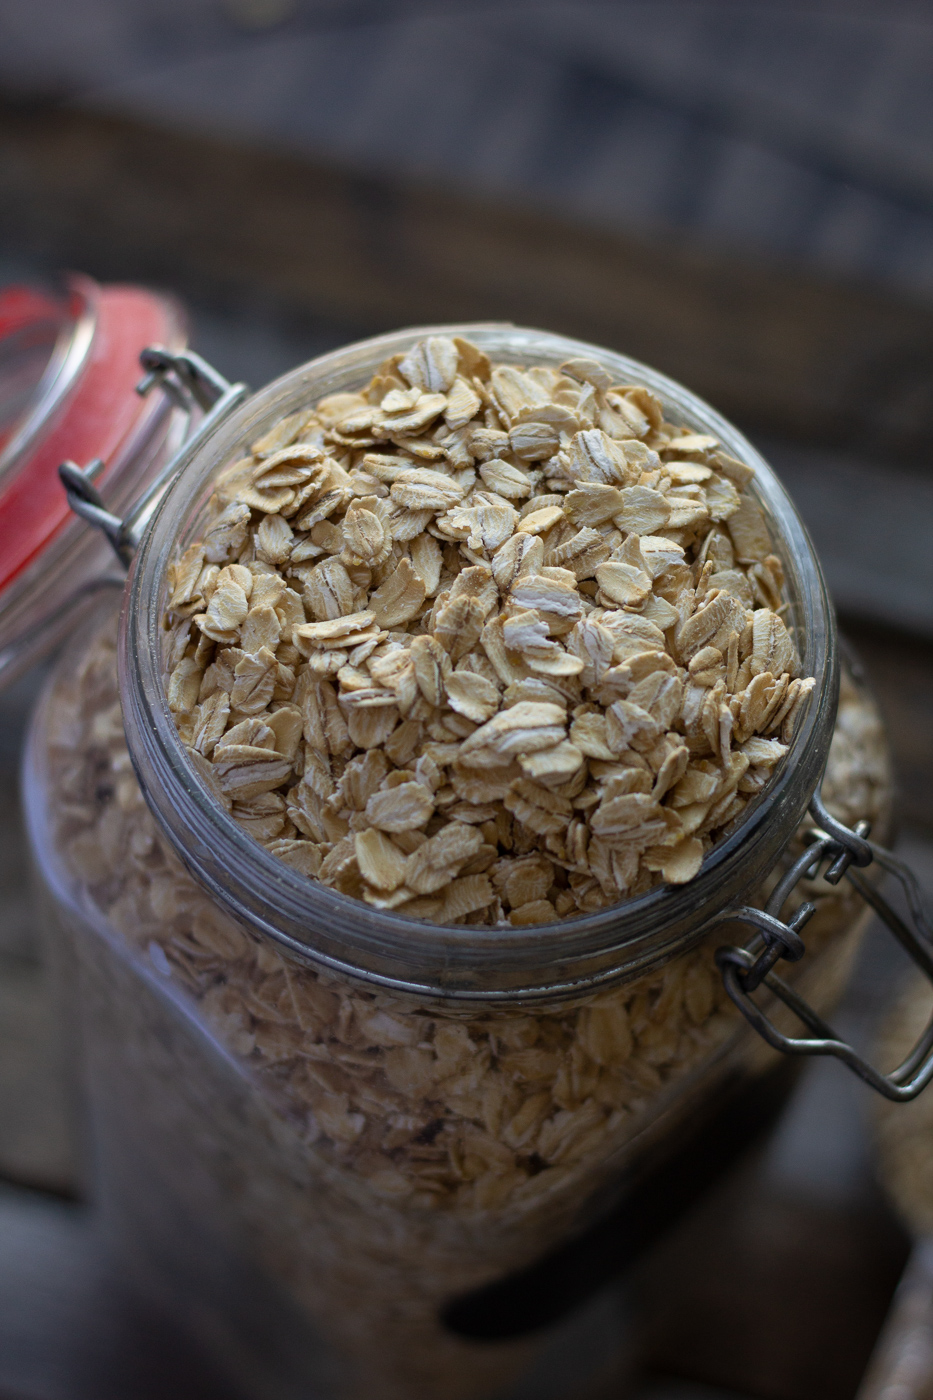 Meet Your Ingredients: Oats